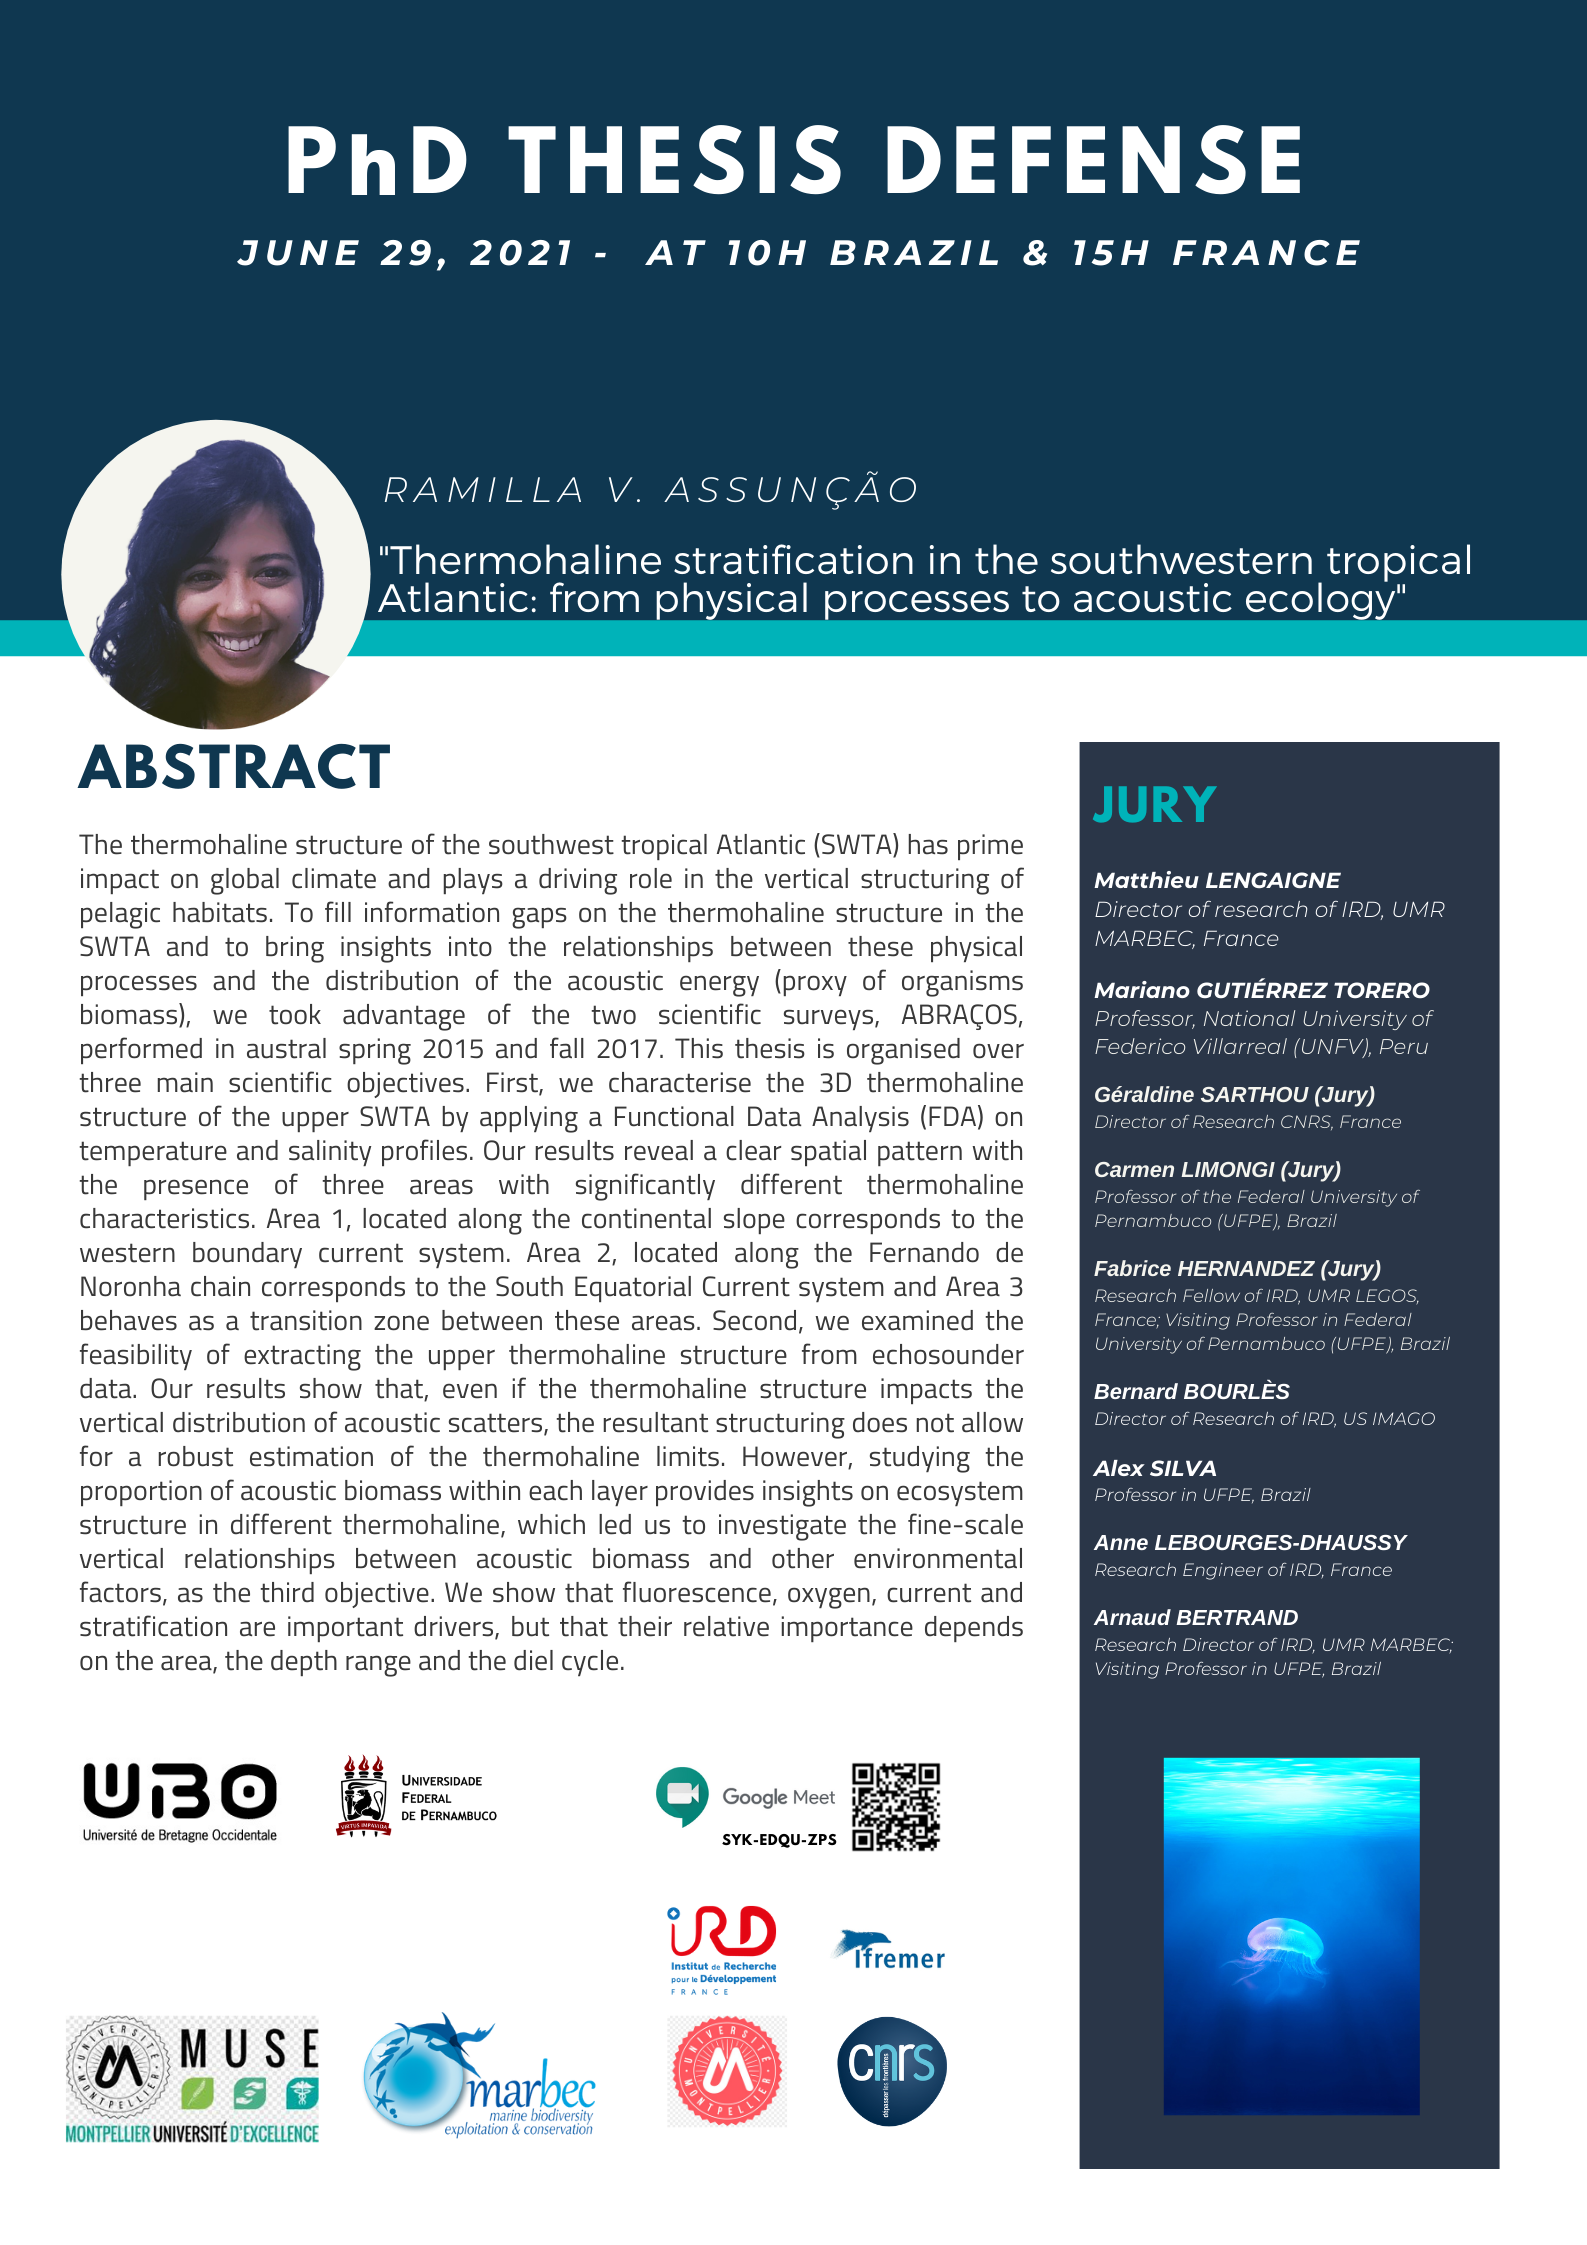 """PhD Thesis Defense: """"Thermohaline stratification in the southwestern tropical Atlantic: from physical processes to acoustic ecology"""""""